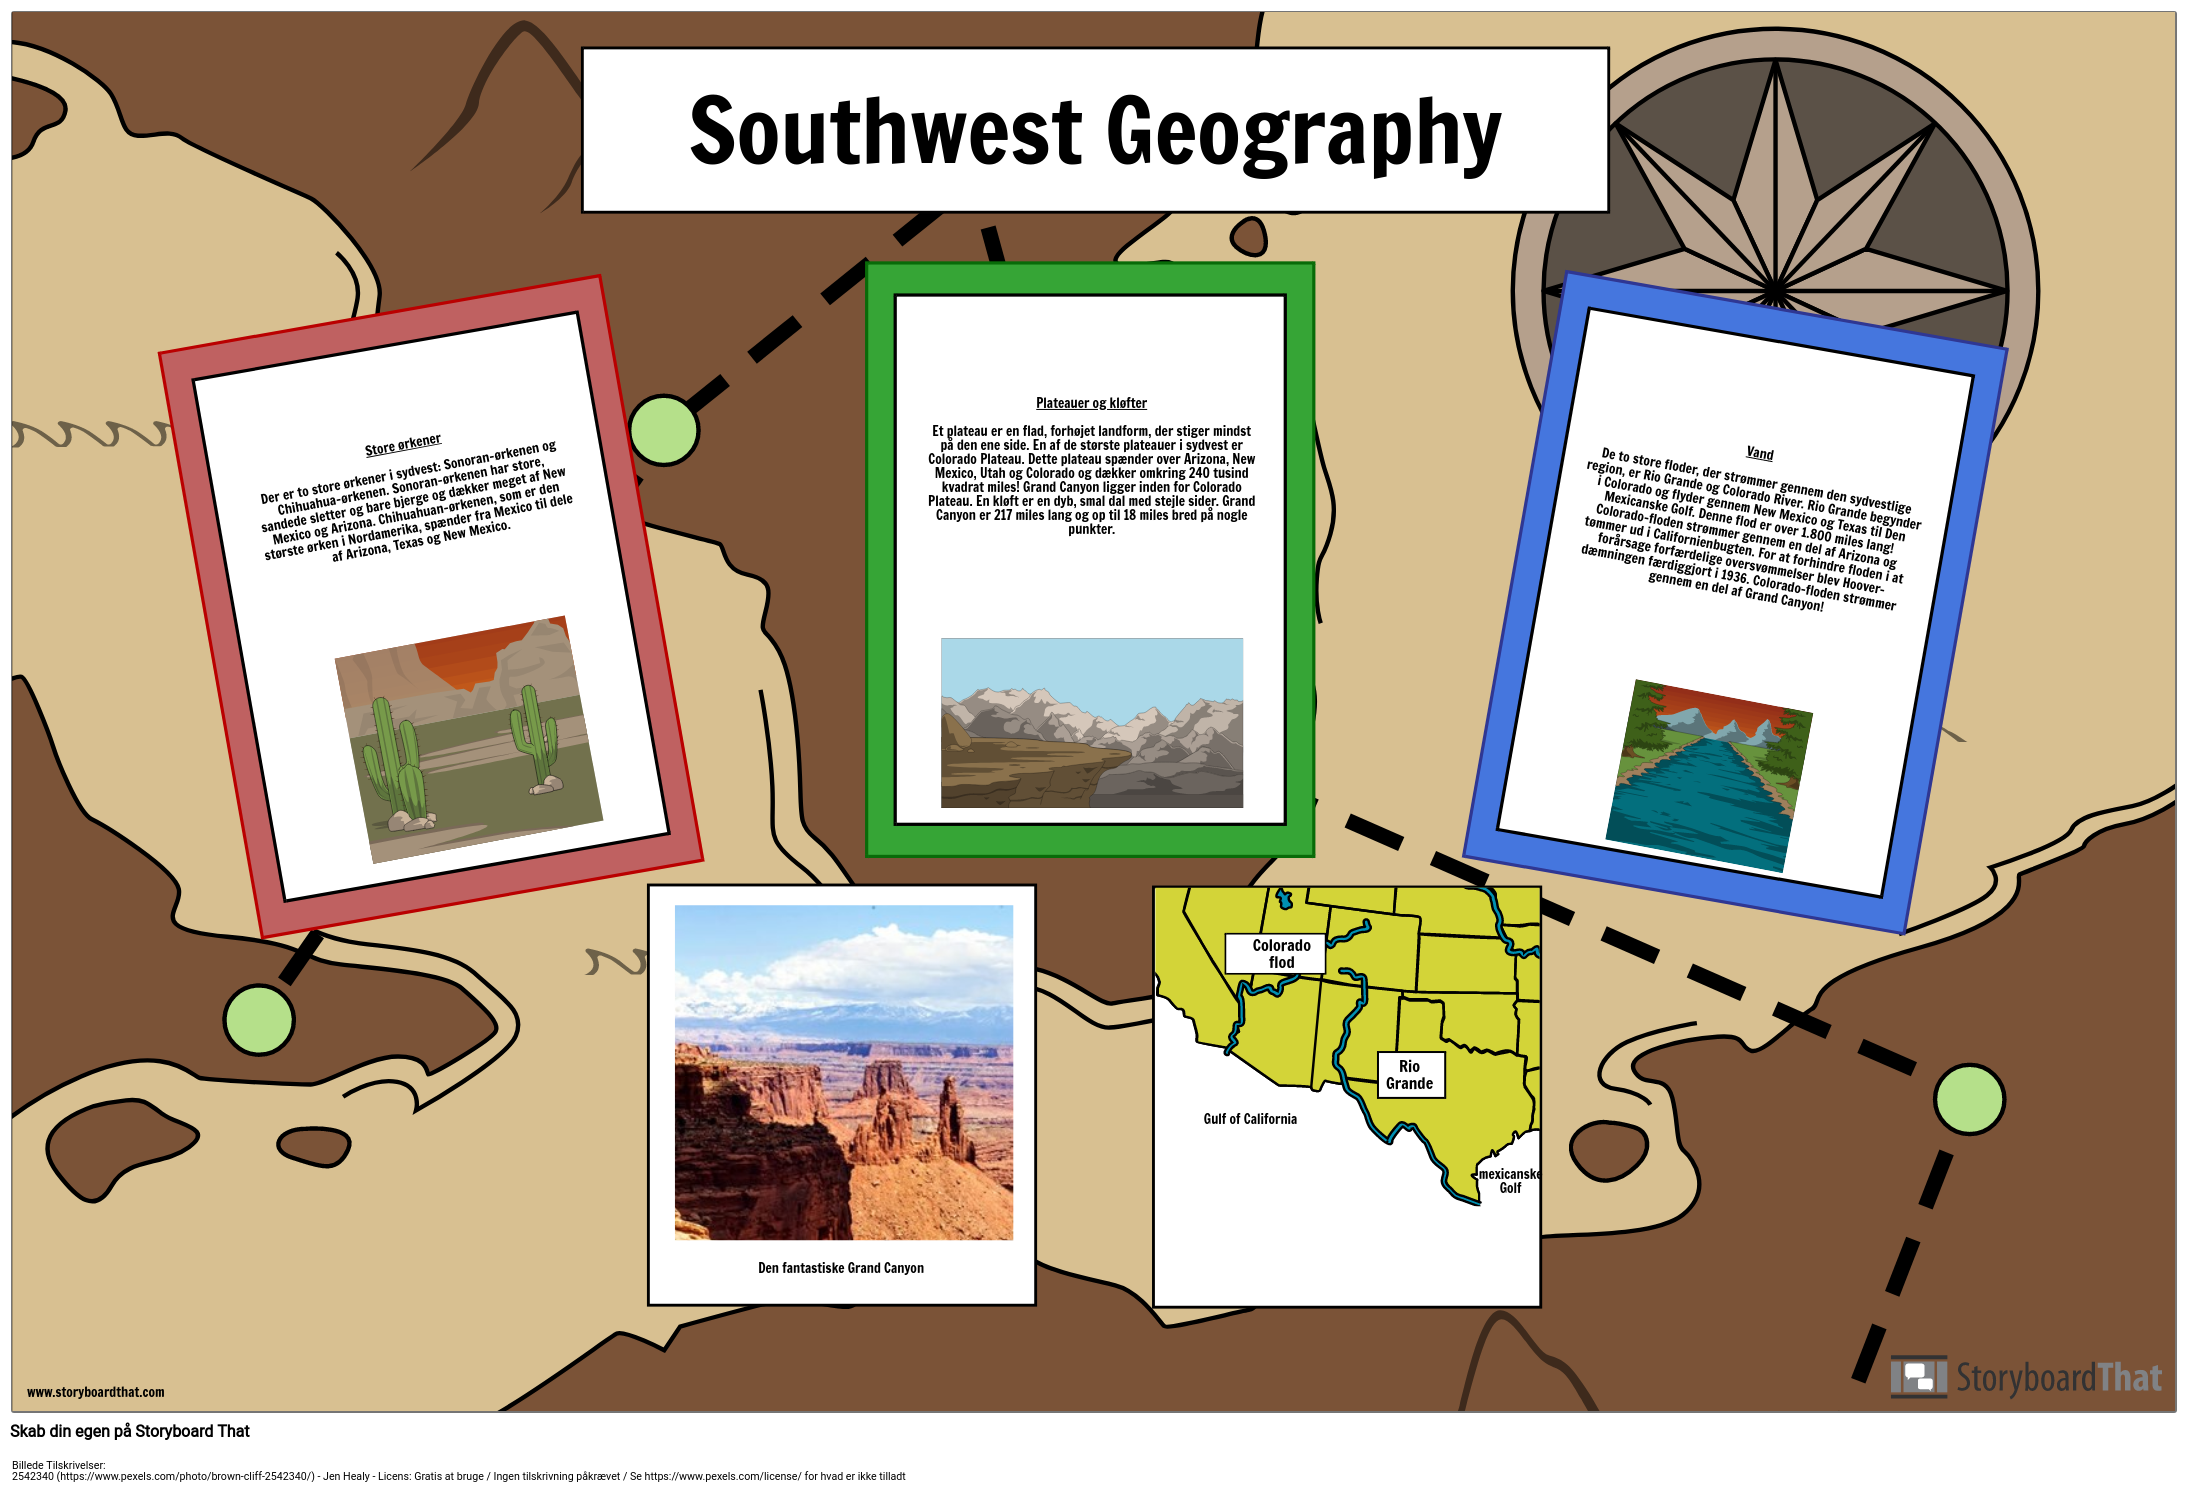 Southwest Geography